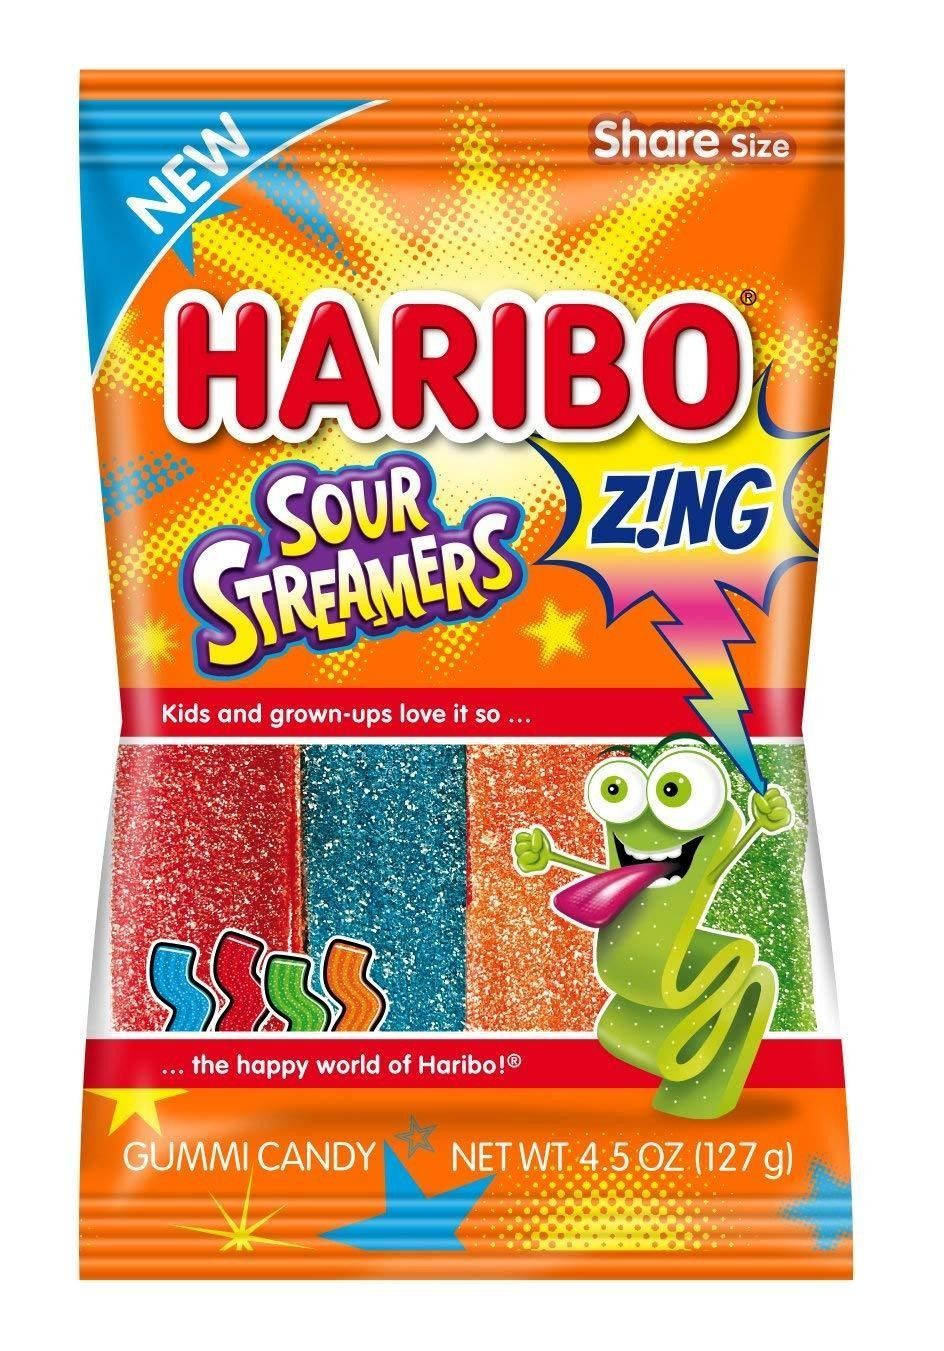 Haribo Zing Sour Steamers 128g (4.5oz) (Box of 12) |American Sweets UK